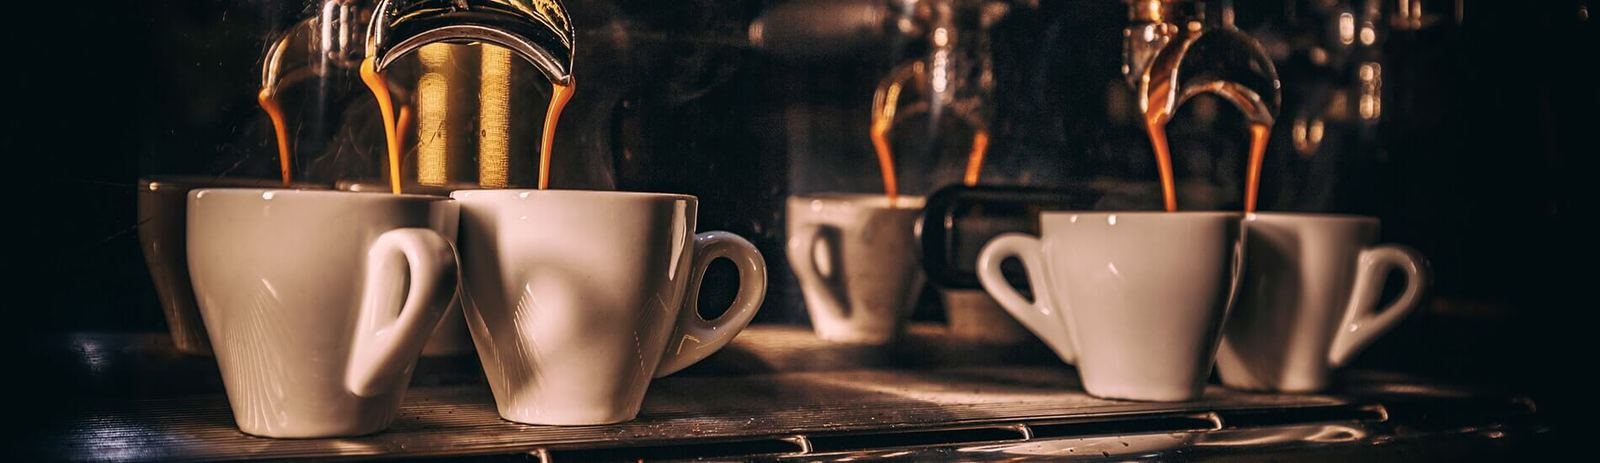 Top 10 Commercial Espresso Machines for 2019